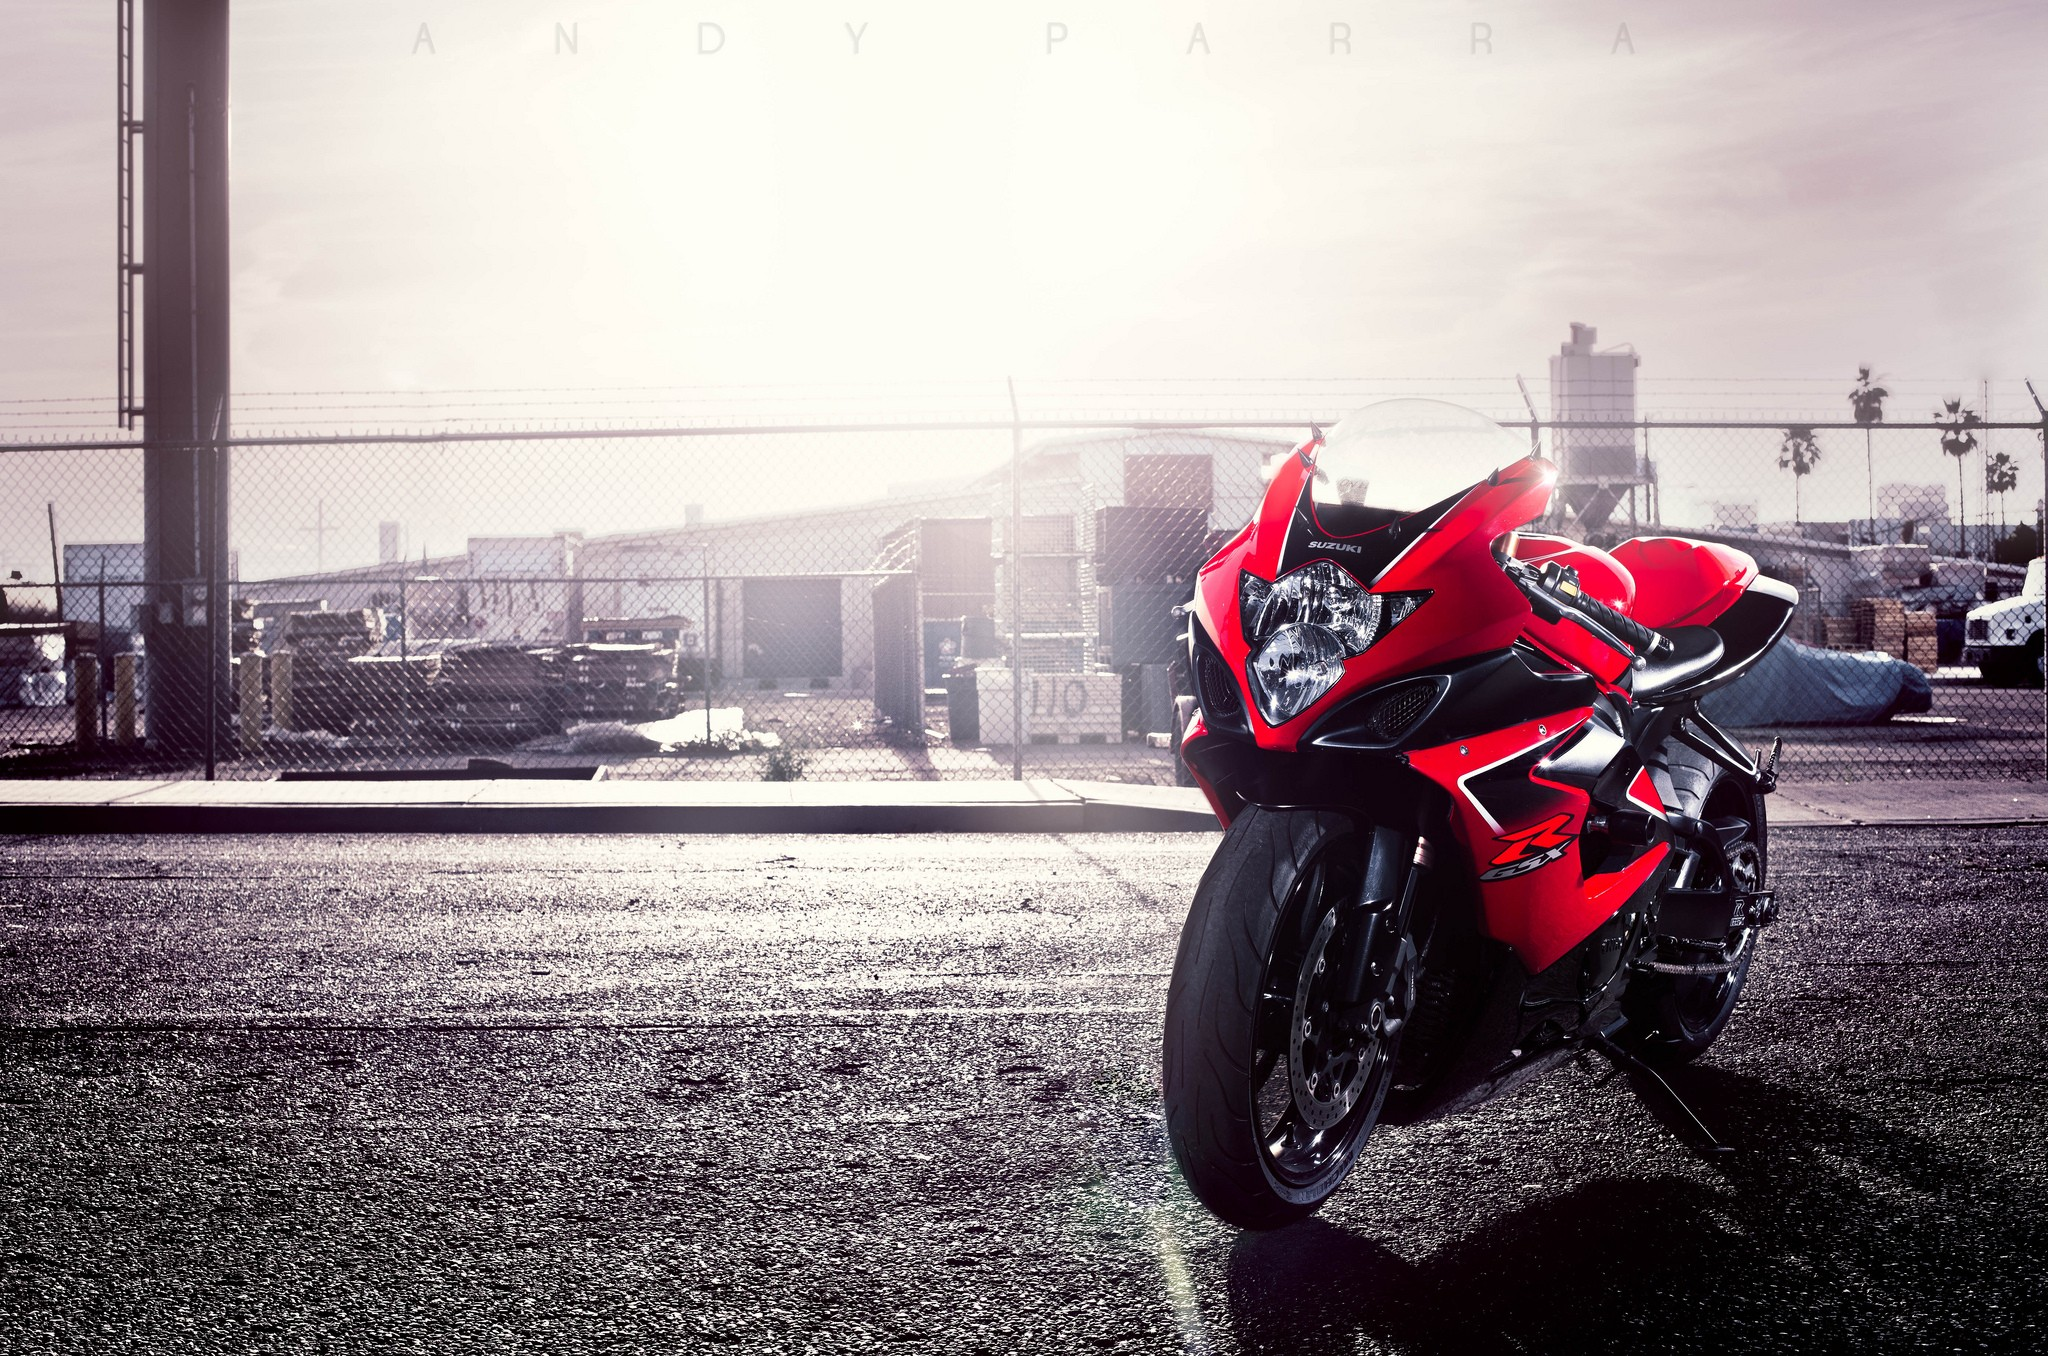 577 Motorcycle HD Wallpapers  Backgrounds Wallpaper Abyss Page 2